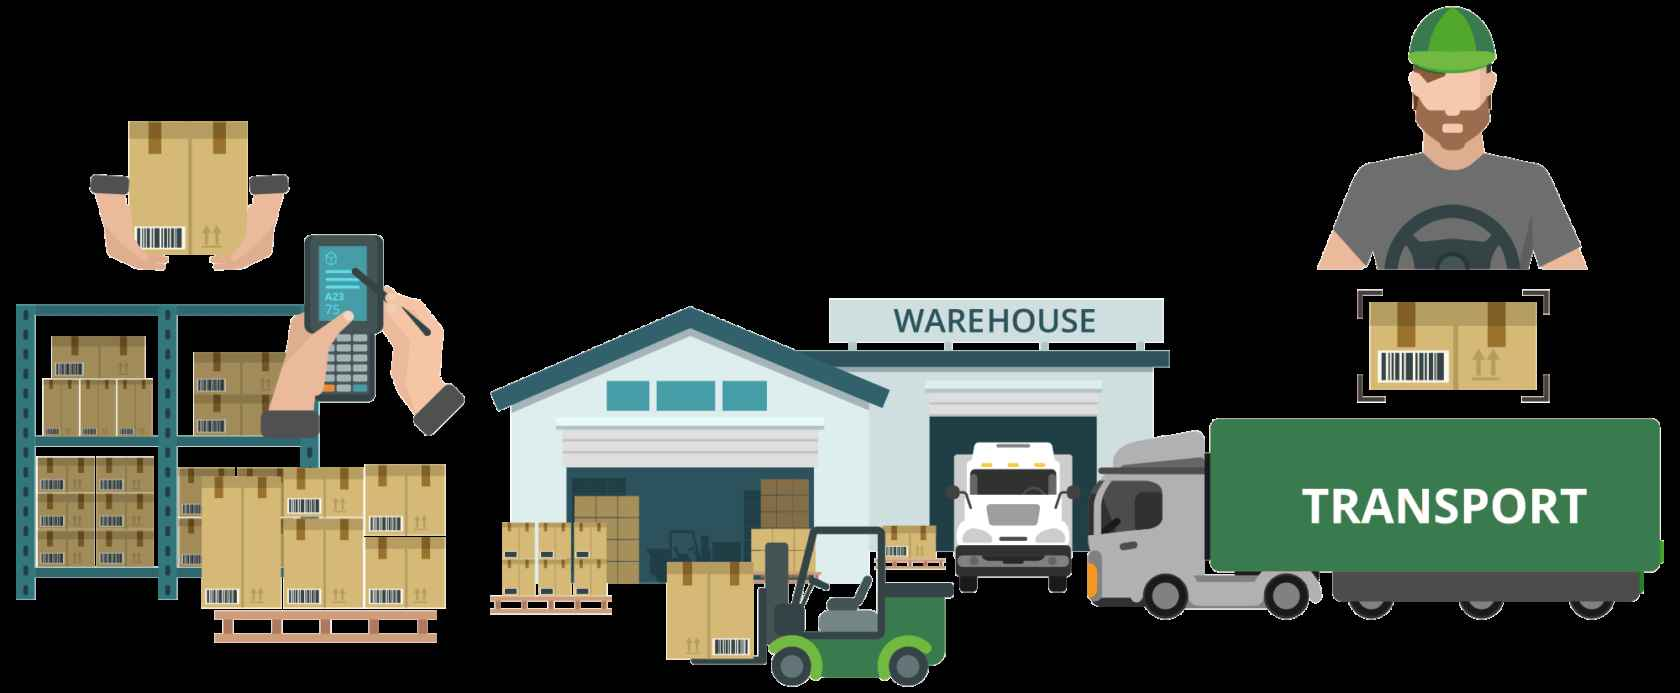 MD_120011_warehouse.png